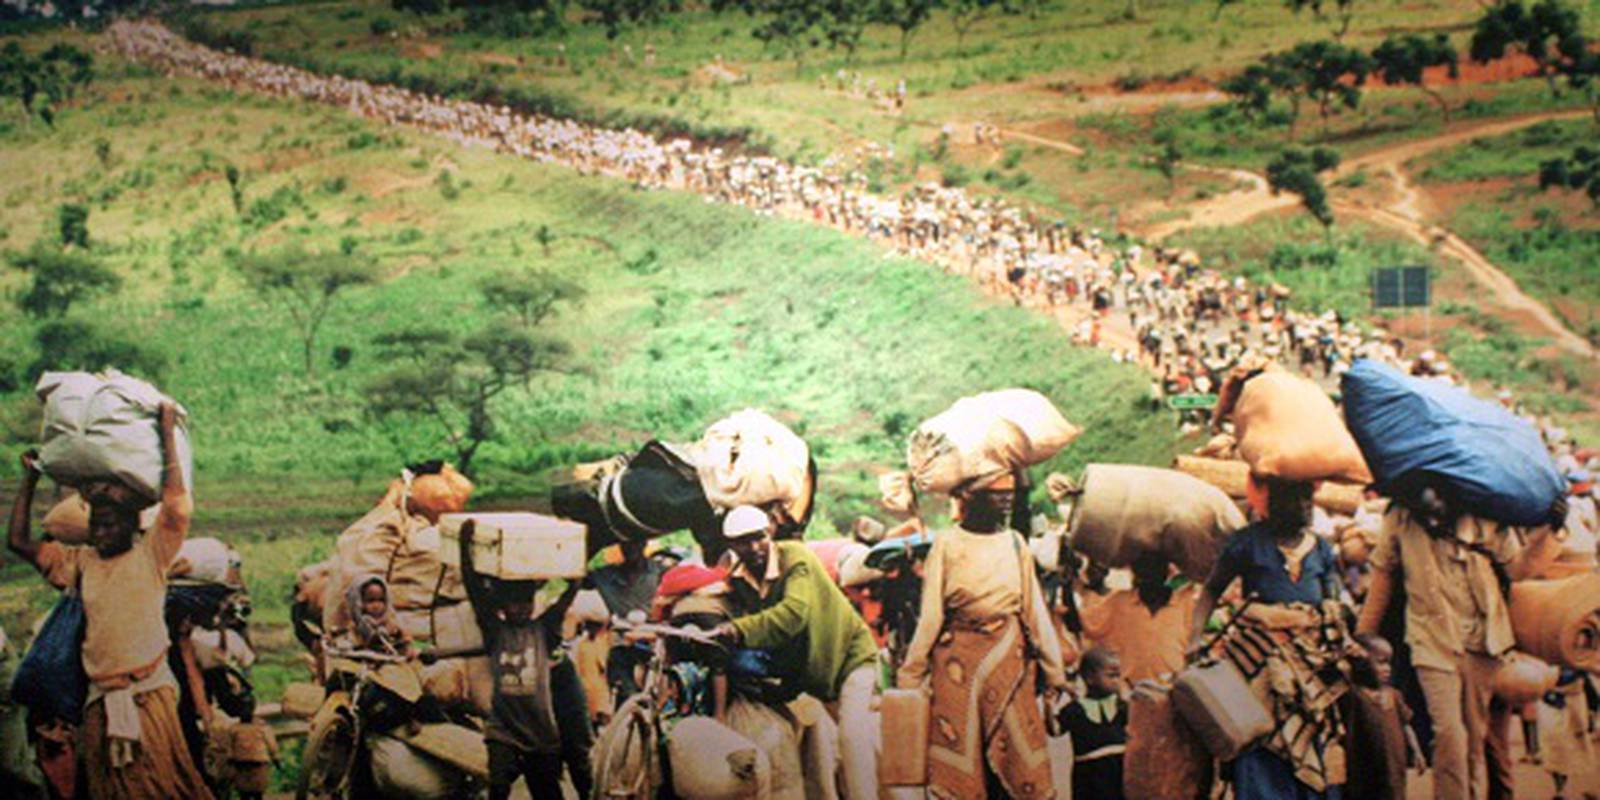 possibility of genocide in nigeria The hausa-fulani muslim strongman is currently orchestrating genocide as defined by the genocide convention against nigeria's 50 million igbo people because of their ethnicity and unwavering devotion to christianity buhari's genocide marks the culmination of a long train of biafran subjugation by.